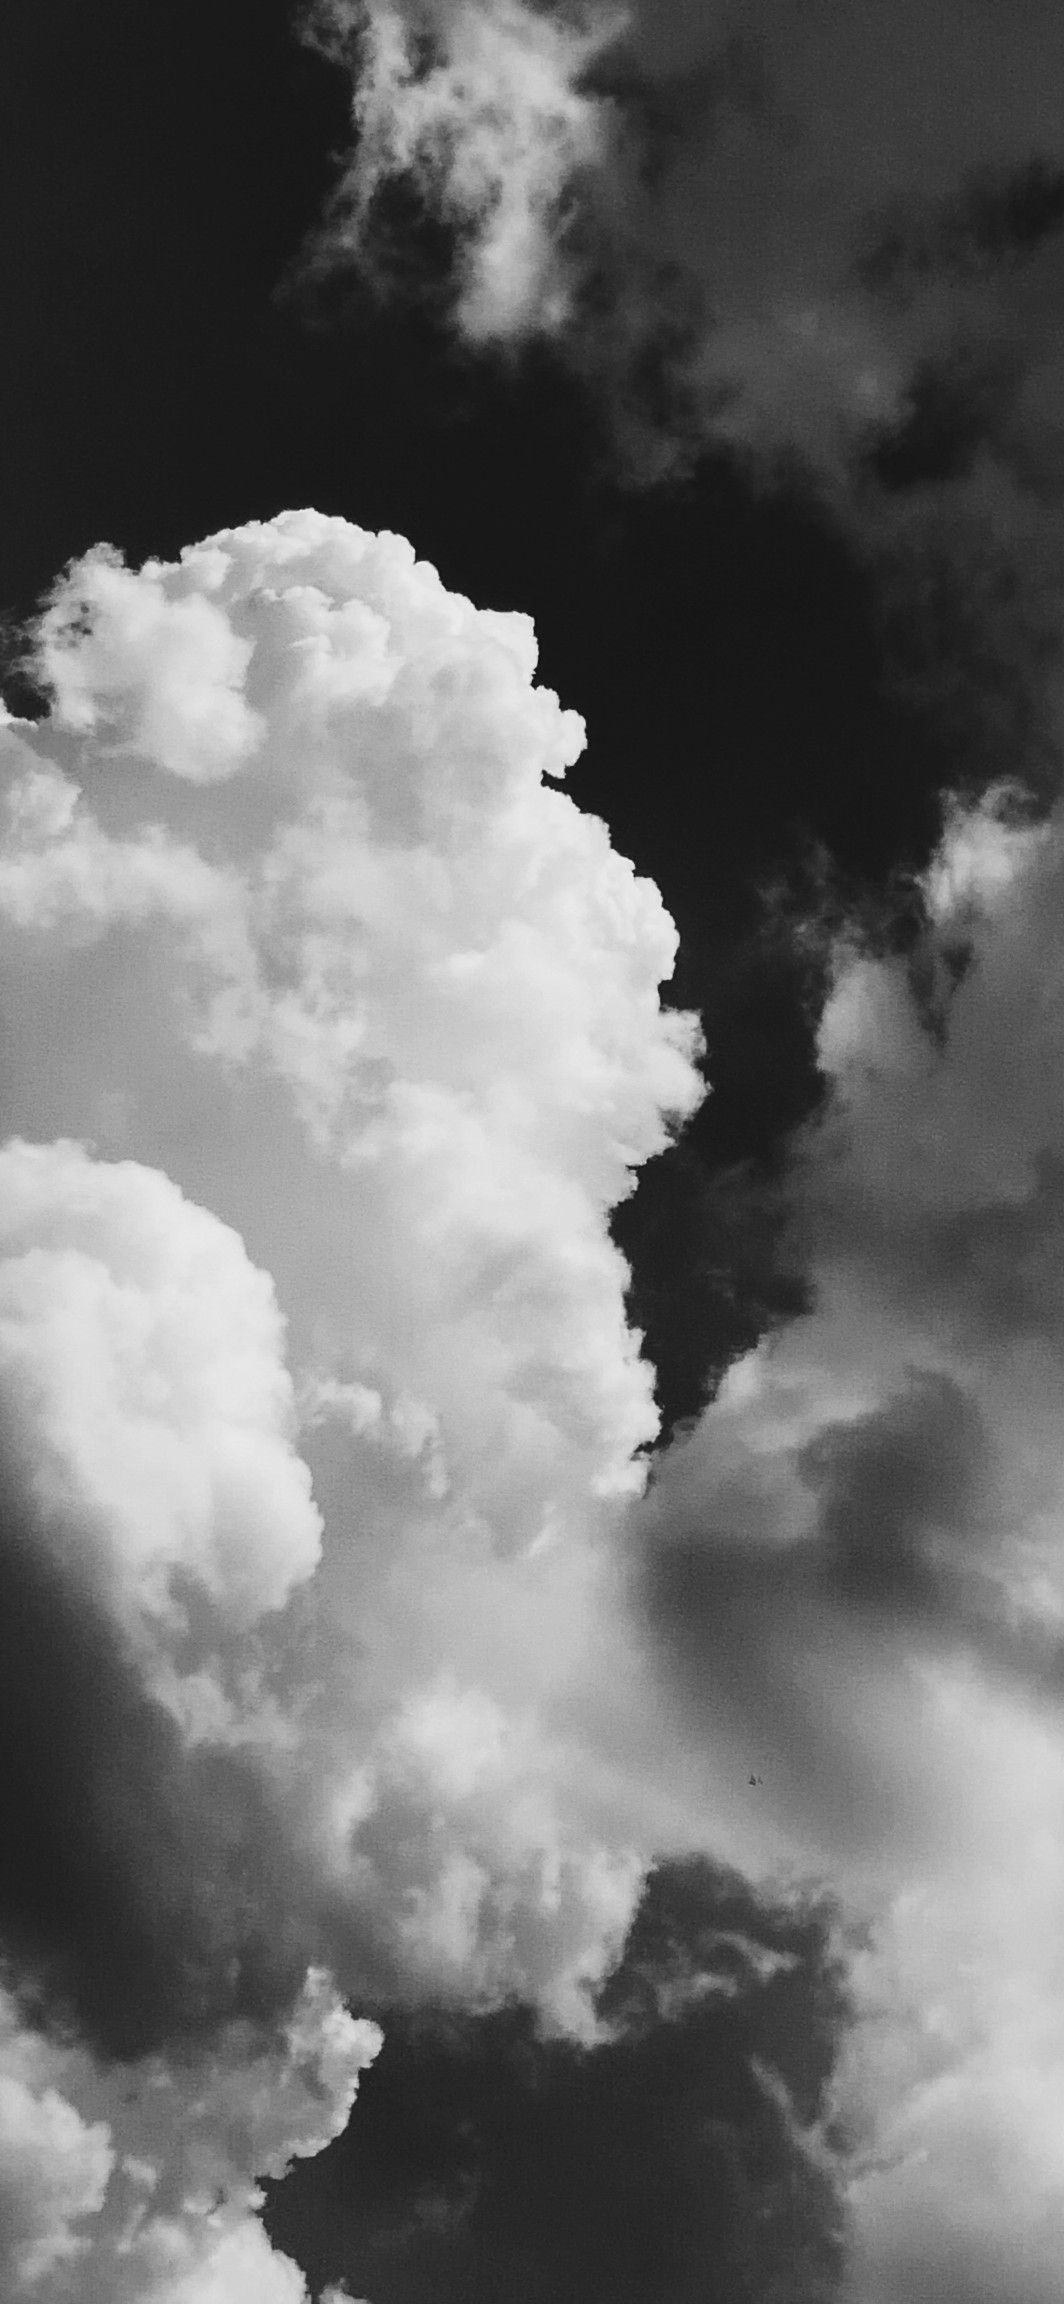 Wallpaper Clouds Wallpaper Iphone Black And White Clouds Cloud Wallpaper